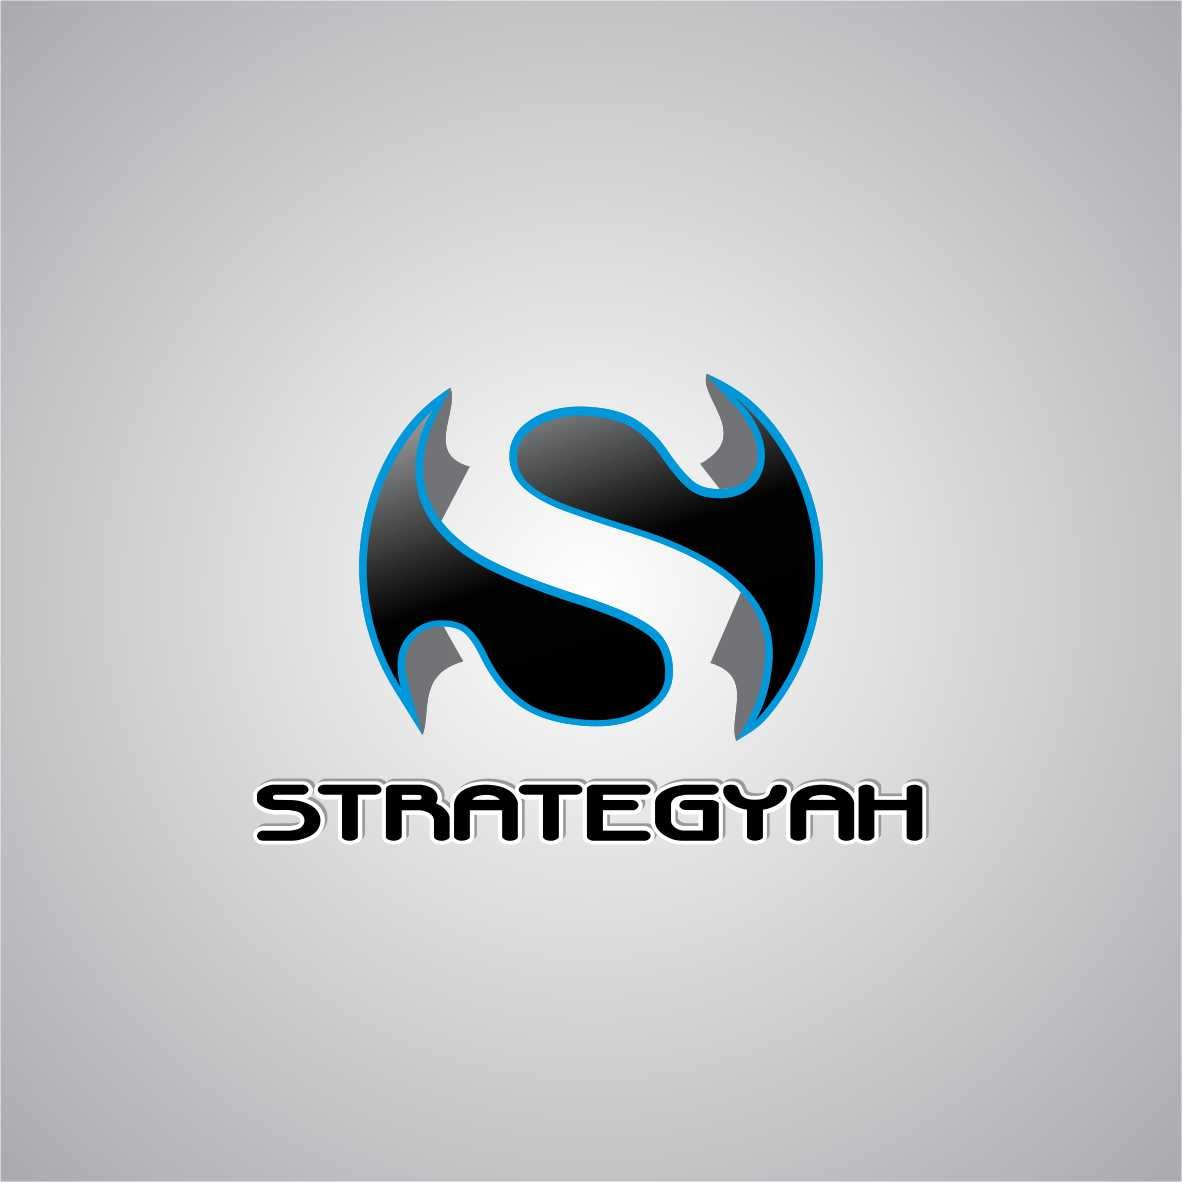 Logo Design by arteo_design - Entry No. 288 in the Logo Design Contest Creative Logo Design for Strategyah.